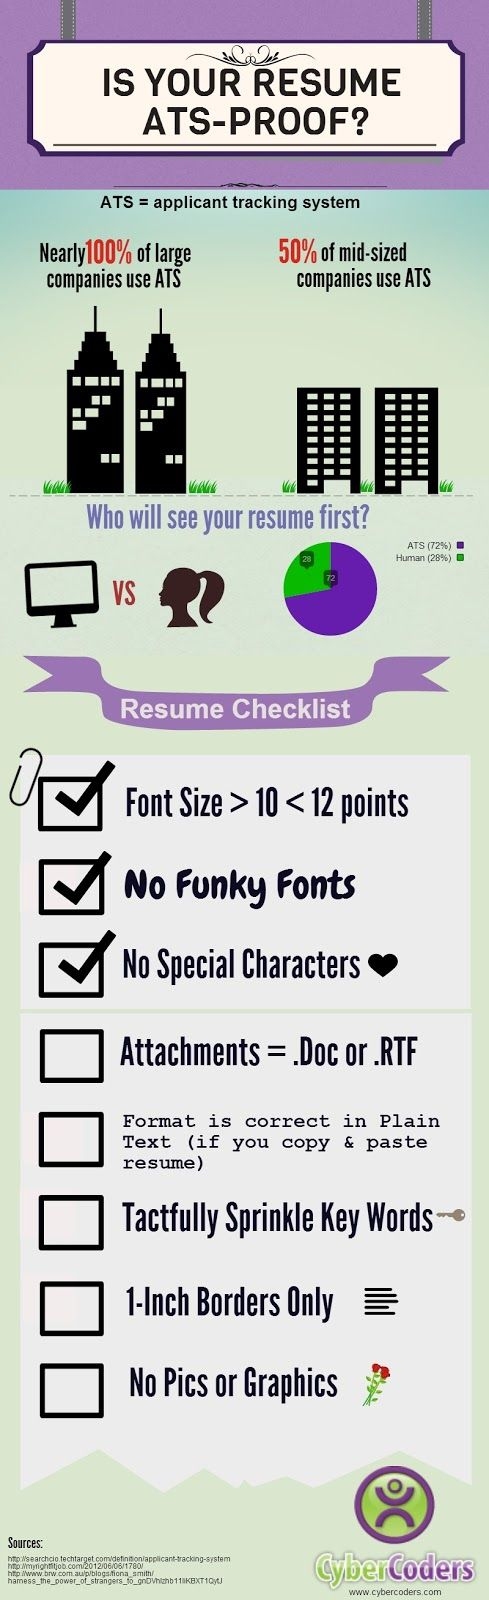 110 best CV   Resume Writing images on Pinterest Resume writing - popular resume fonts